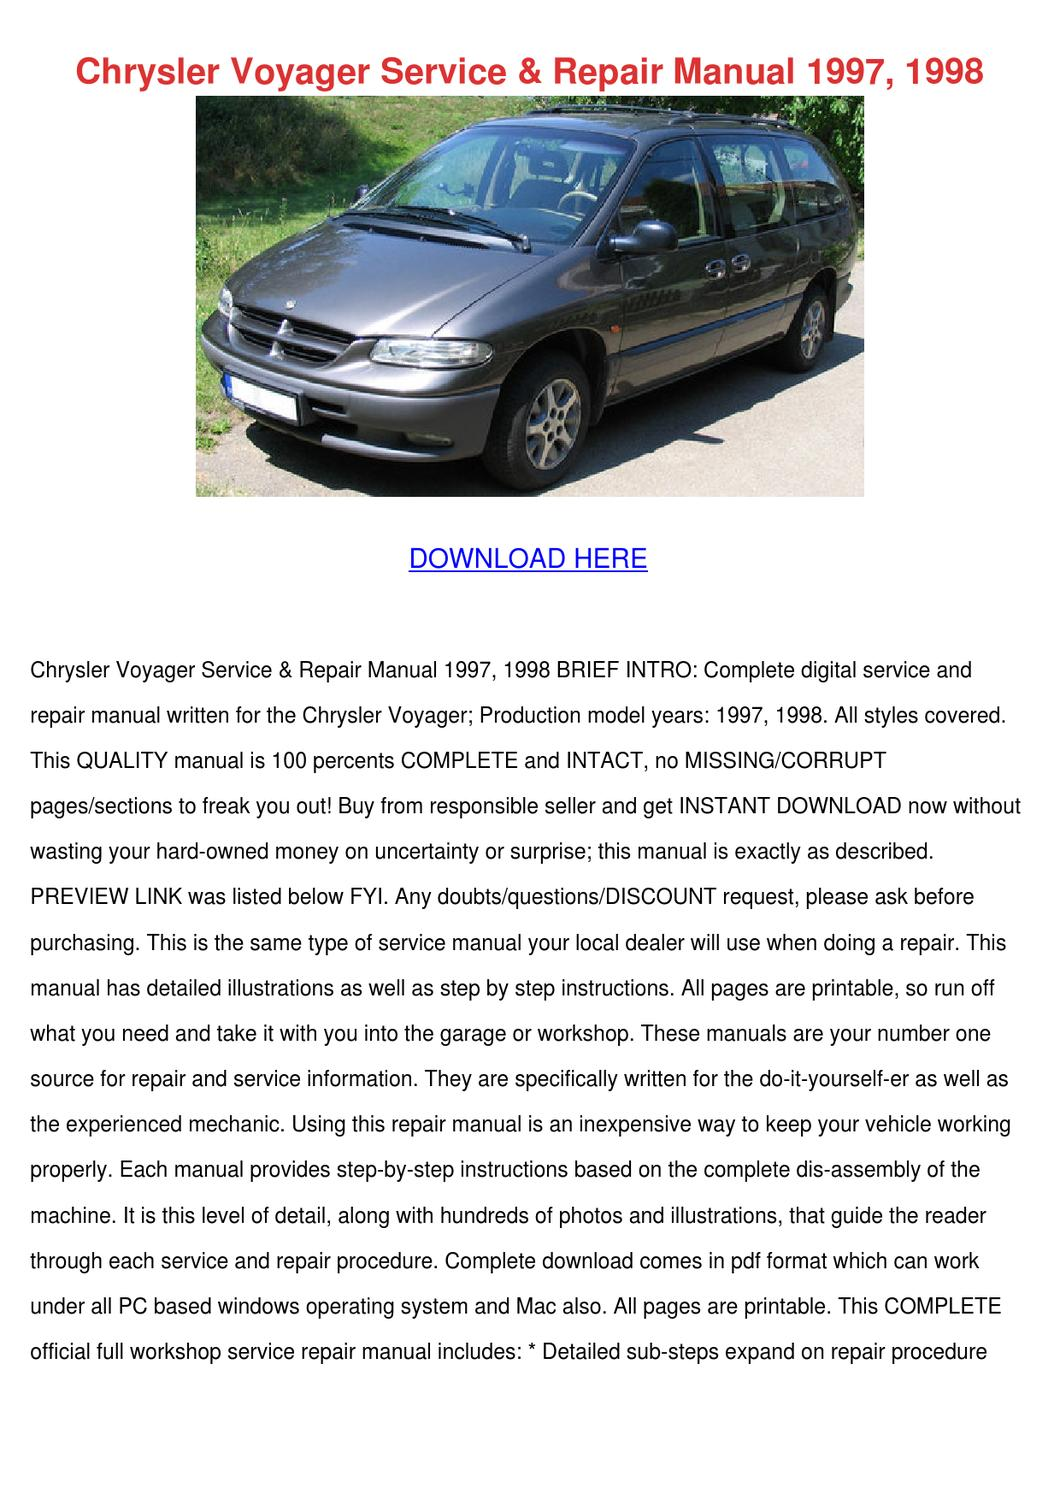 Chrysler Voyager Service Repair Manual 1997 1 by Wei Velunza - issuu